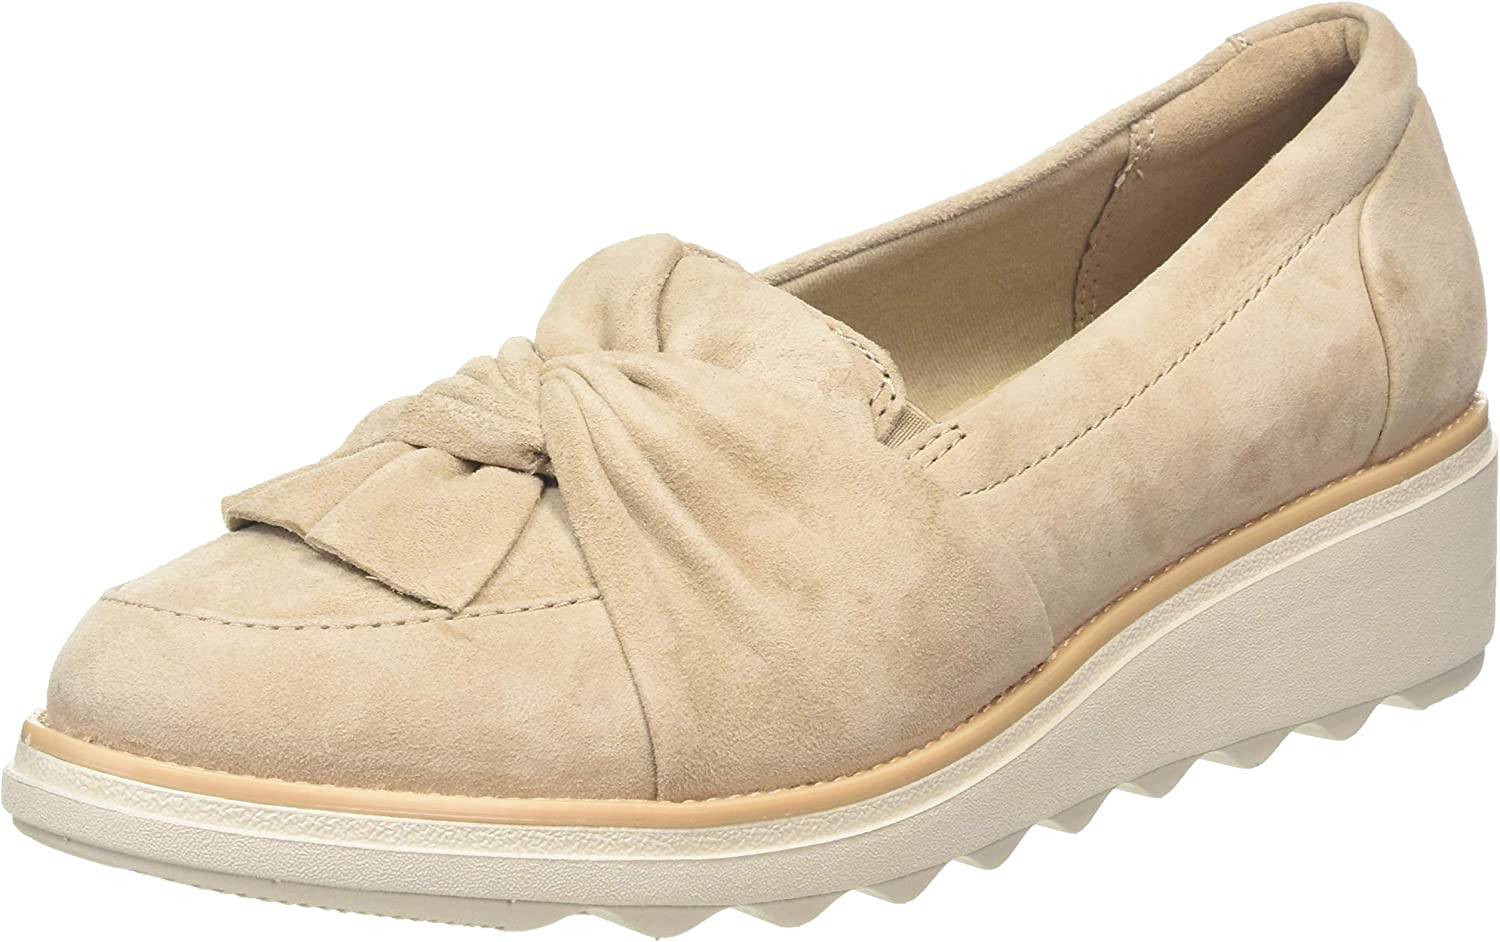 Clarks Sharon Dasher, Mocasines para Mujer